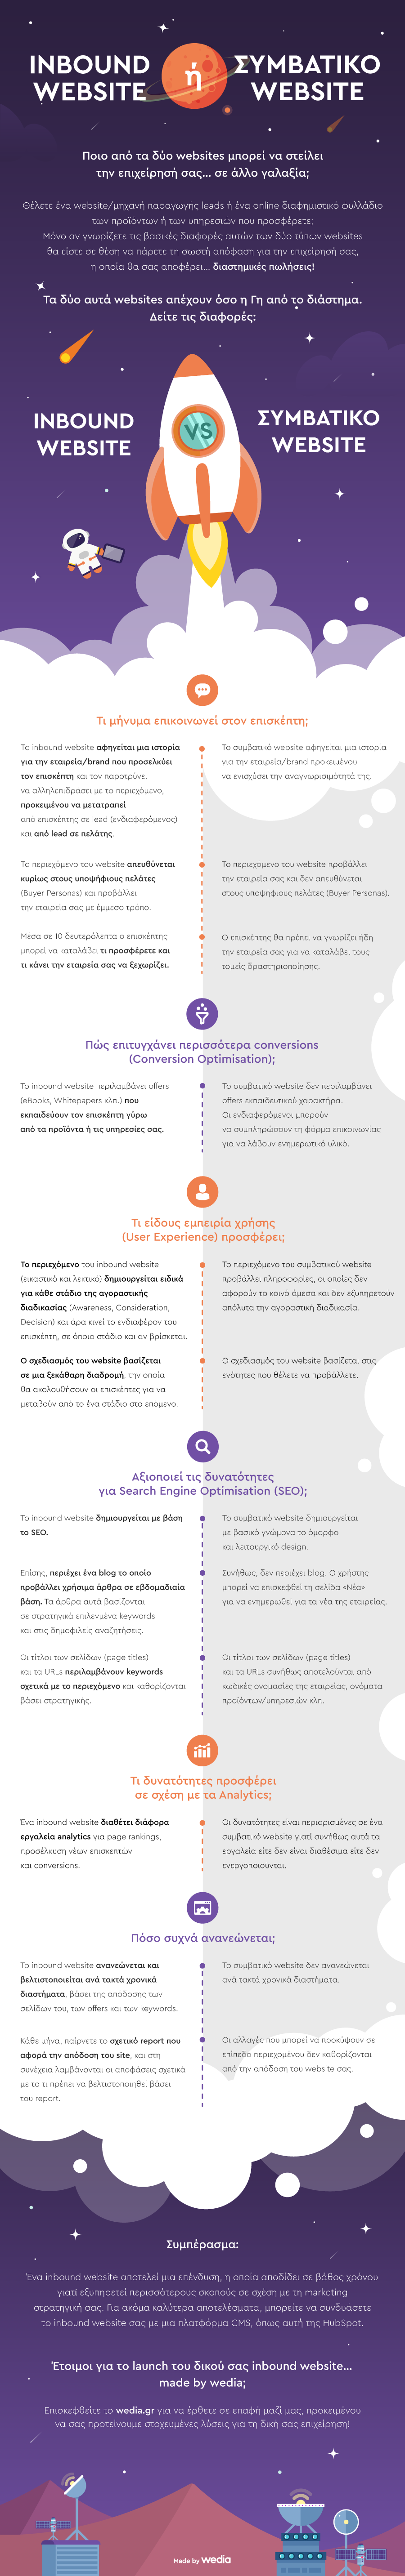 wedia-infographic-inbound-vs-standard-website.png